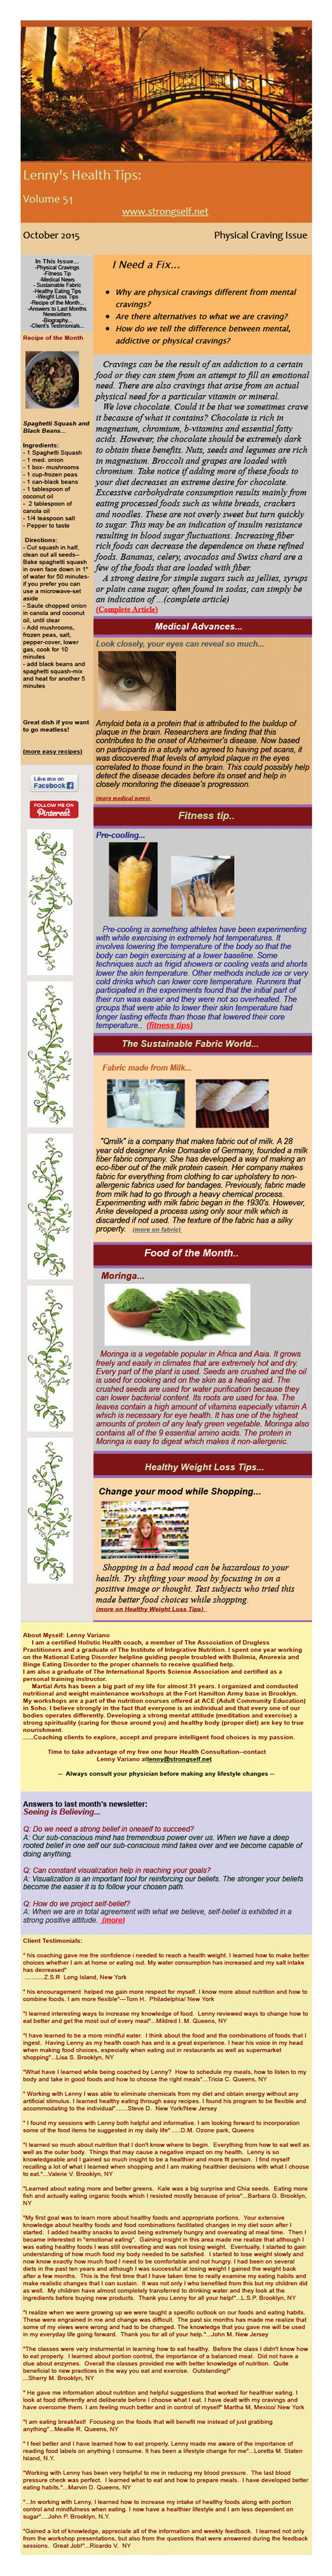 October 2015 Healthy Tips Newsletter from certified Holistic Health Counselor Lenny Variano